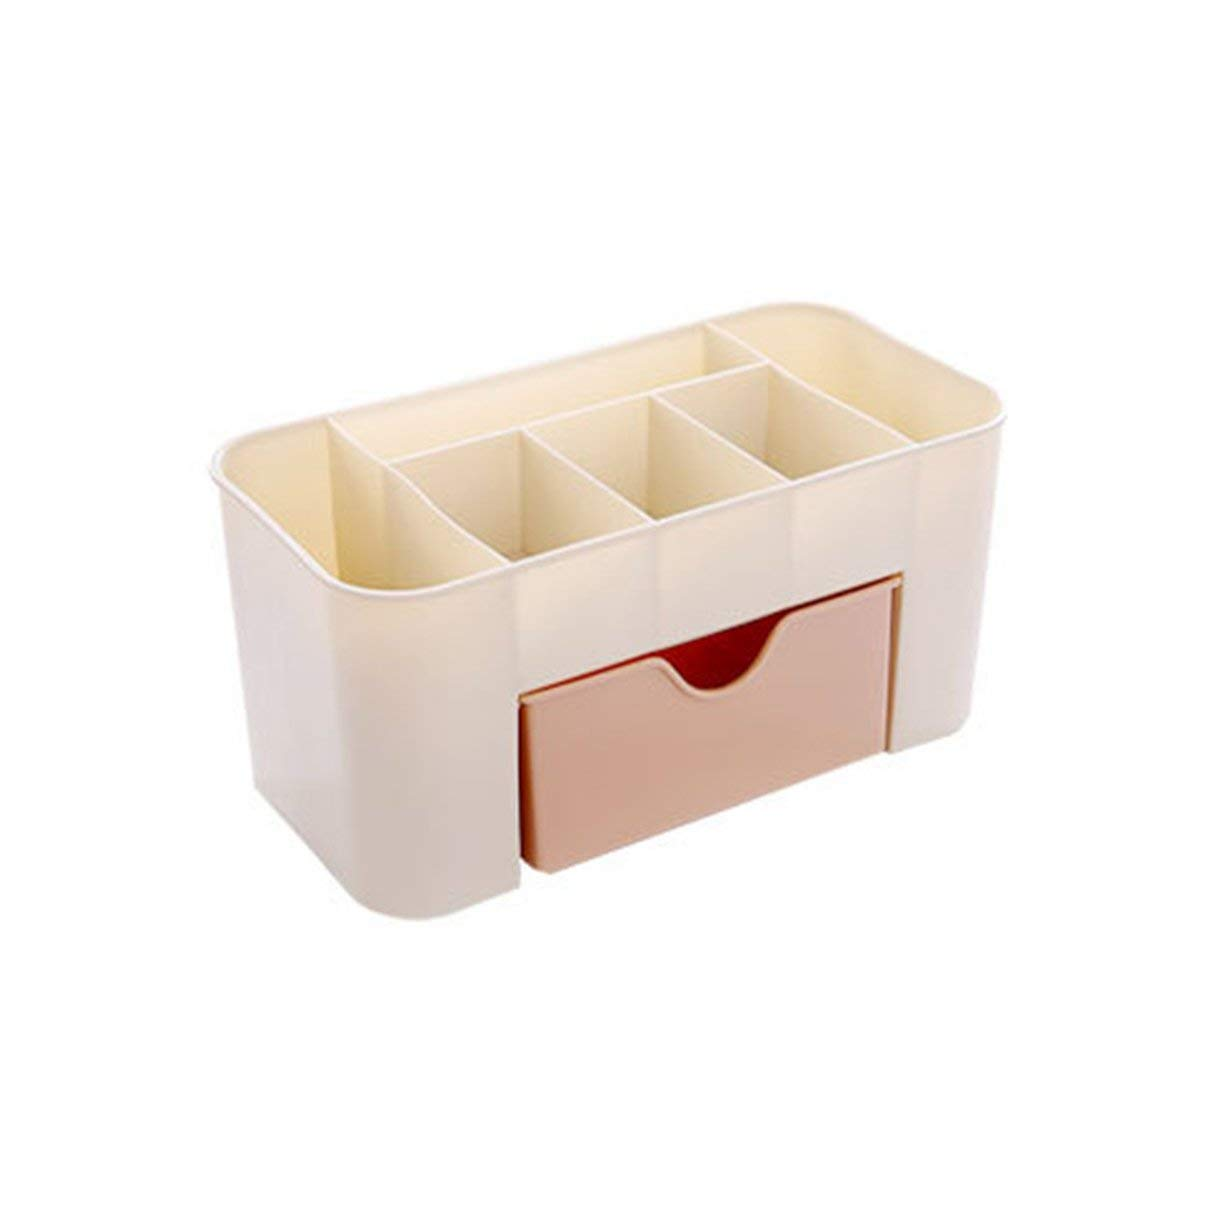 Storage Case, Storage Box, Plastic Storage Cabinets, Non-slip Bottom Small Drawer, 2- Layer Dressing case Small Things Organizer Desktop Boxes for Cosmetics, Small Things - Pink